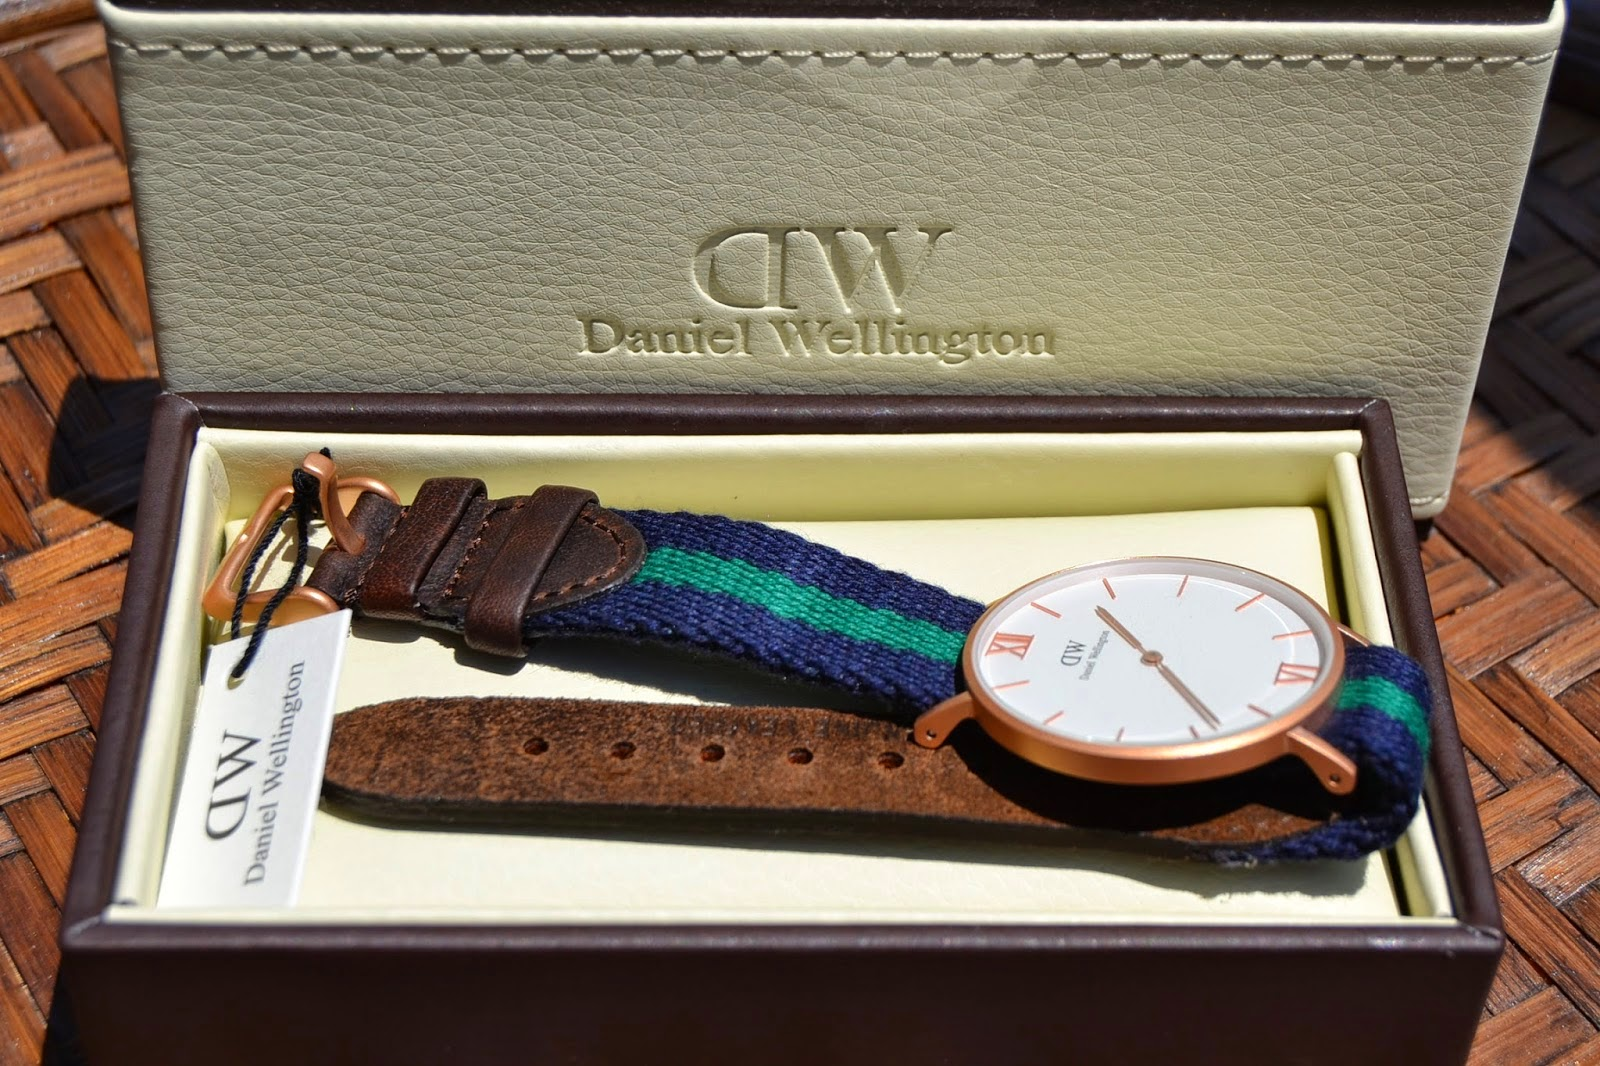 http://www.syriouslyinfashion.com/2014/06/daniel-wellington-grace-collection.html